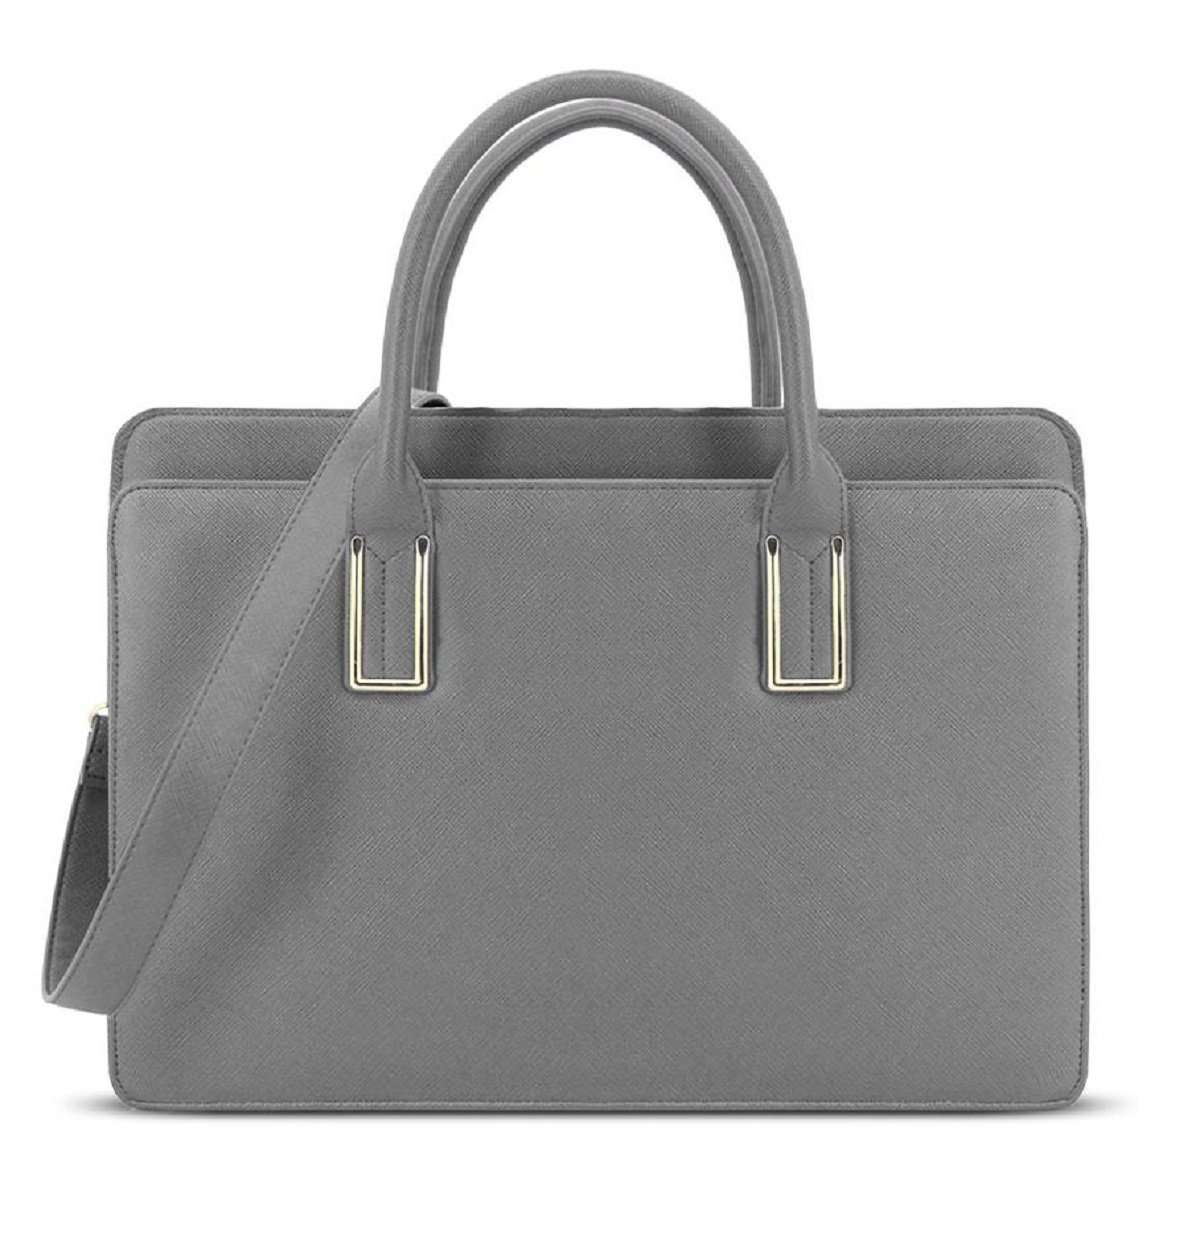 374dc3d2e3f7 LYDC Pure Colour Handbags for Office Lady London with Optional Shoulder  Straps and Simple Design - Grey  Amazon.in  Bags